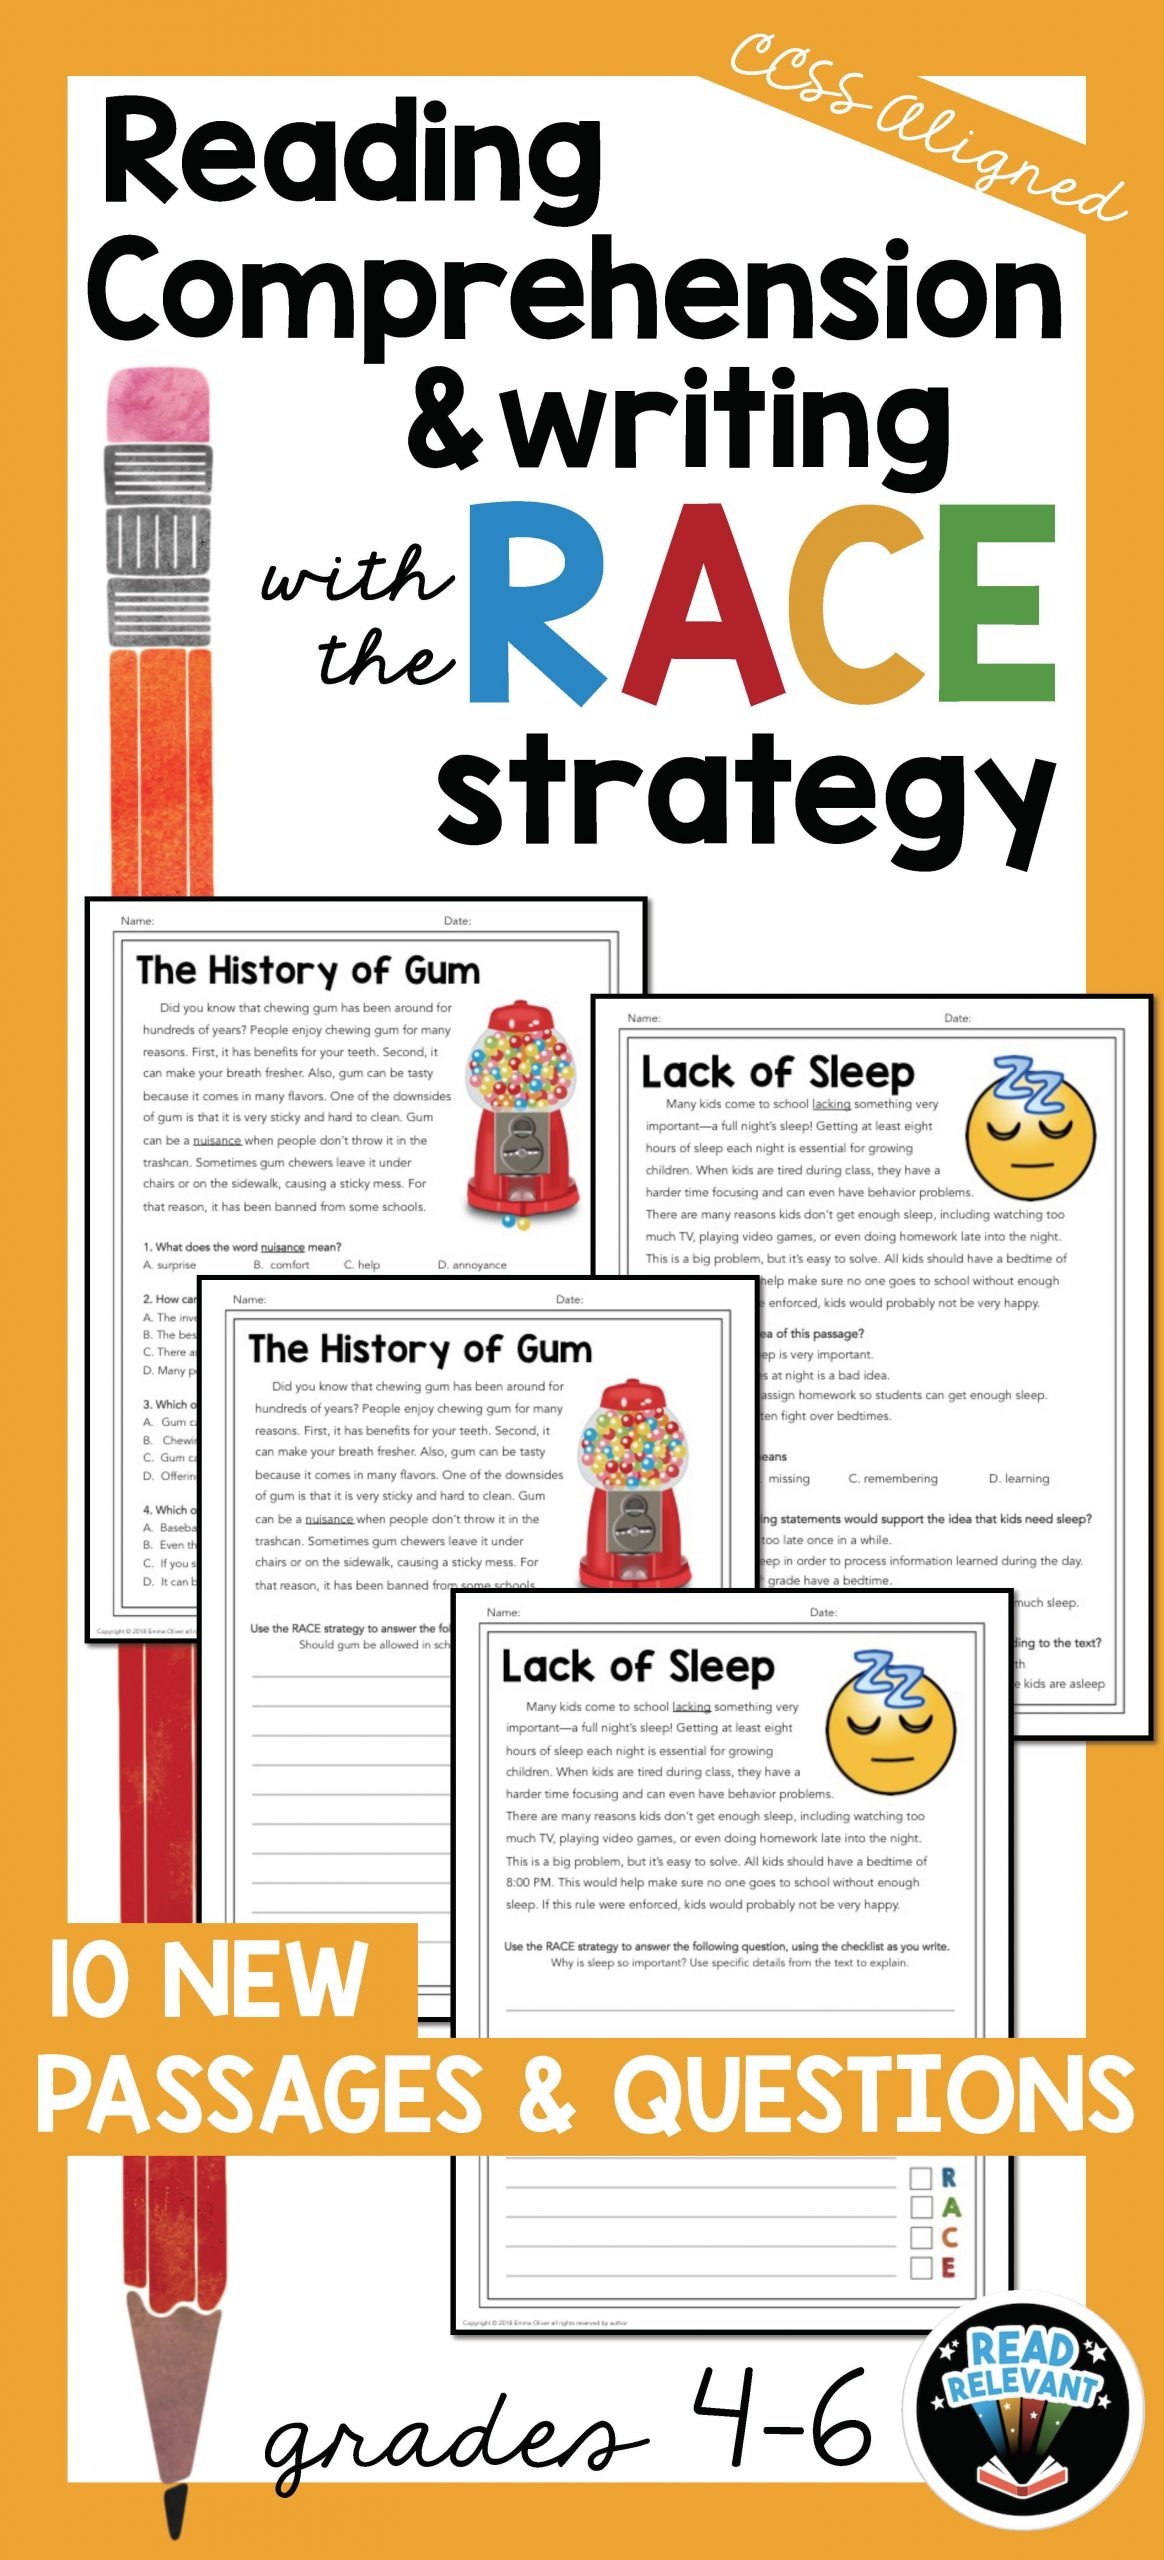 Reading and Responding Worksheets Reading Prehension and Writing with the Race Strategy